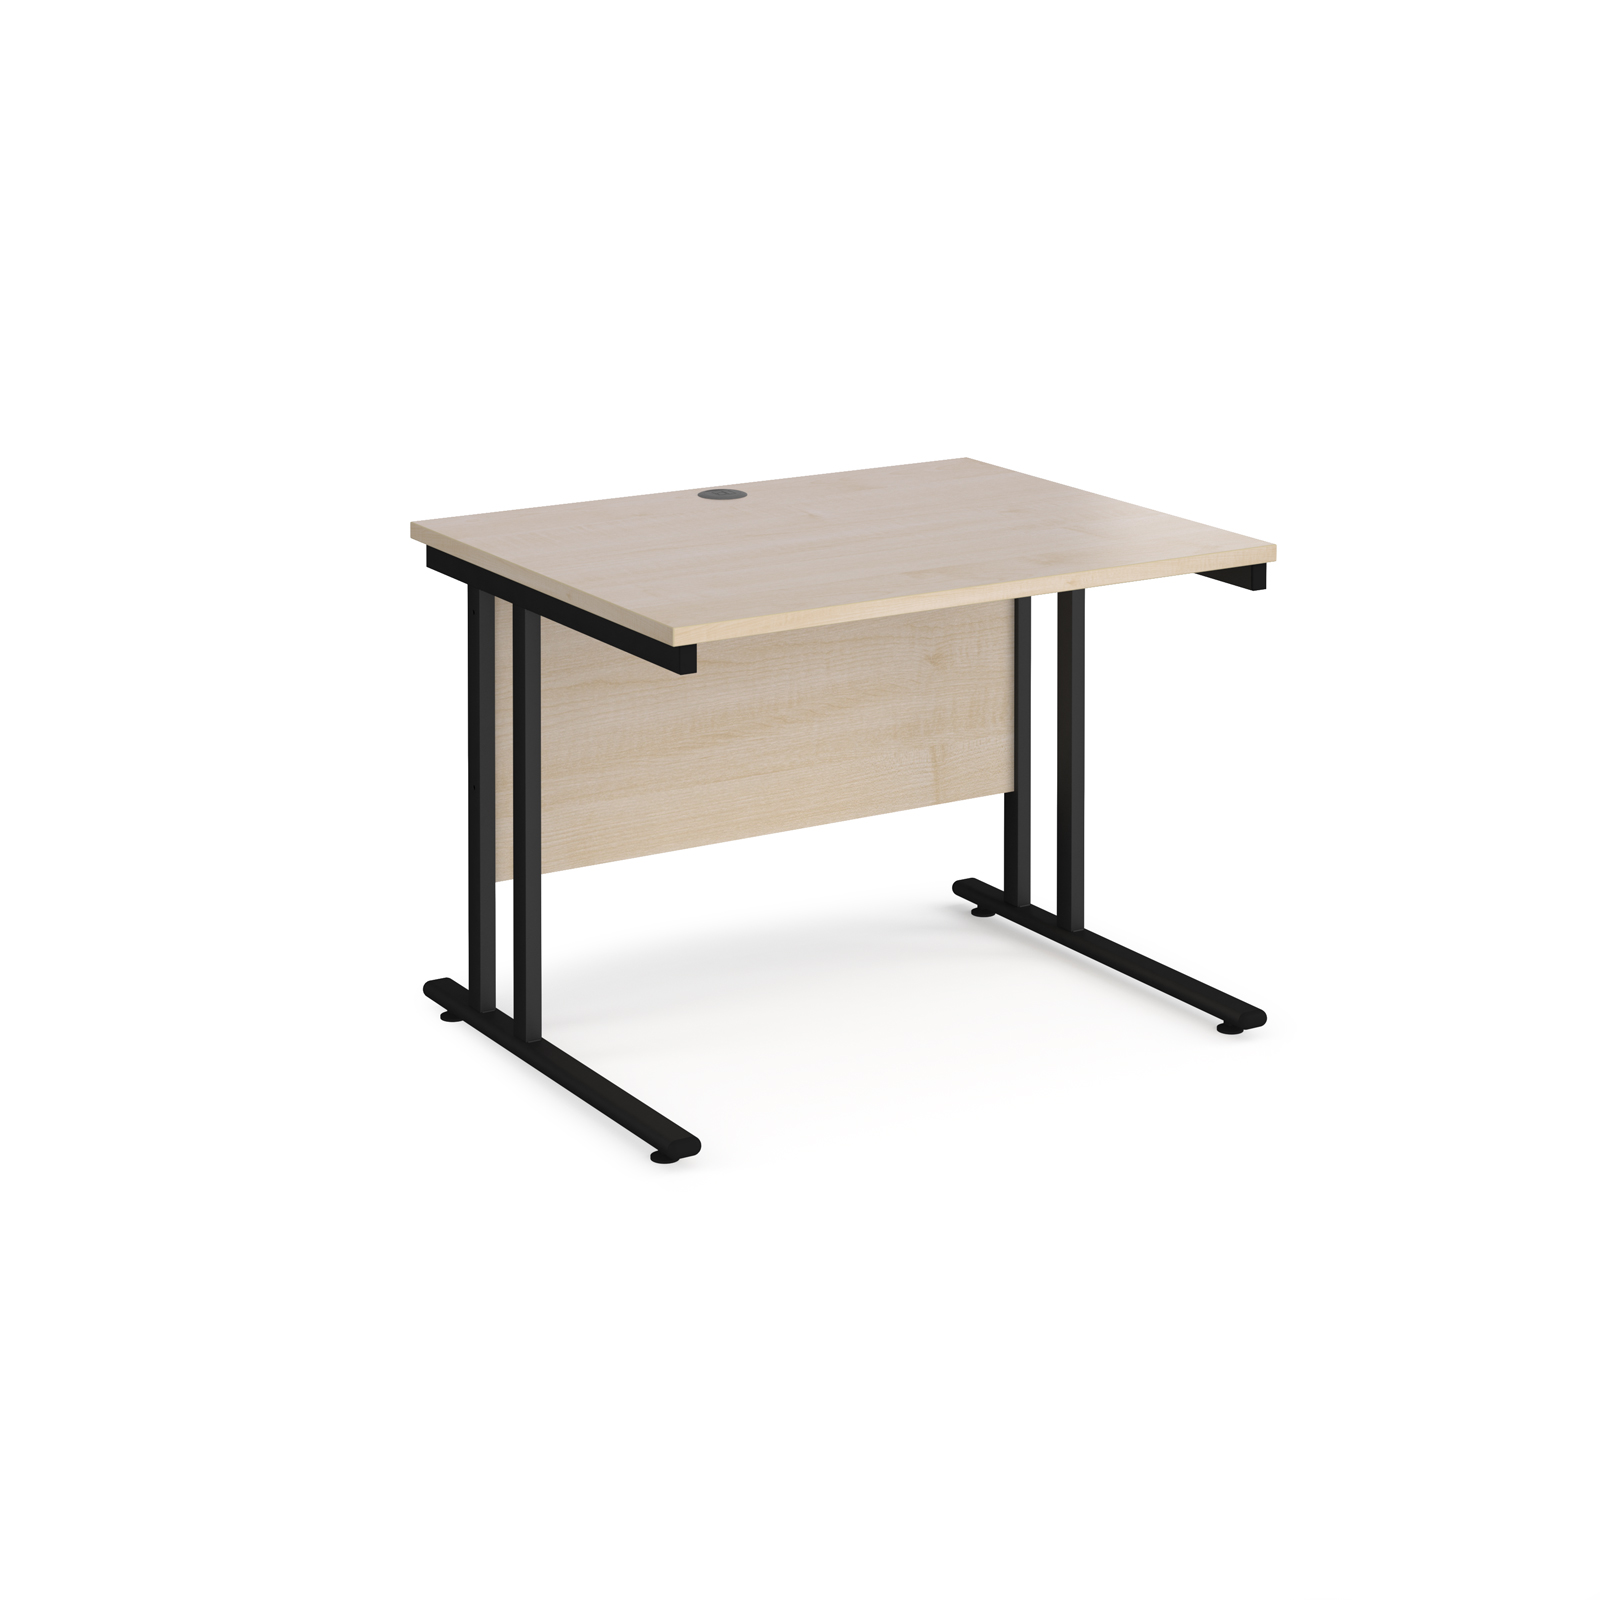 Rectangular Desks Maestro 25 straight desk 1000mm x 800mm - black cantilever leg frame, maple top